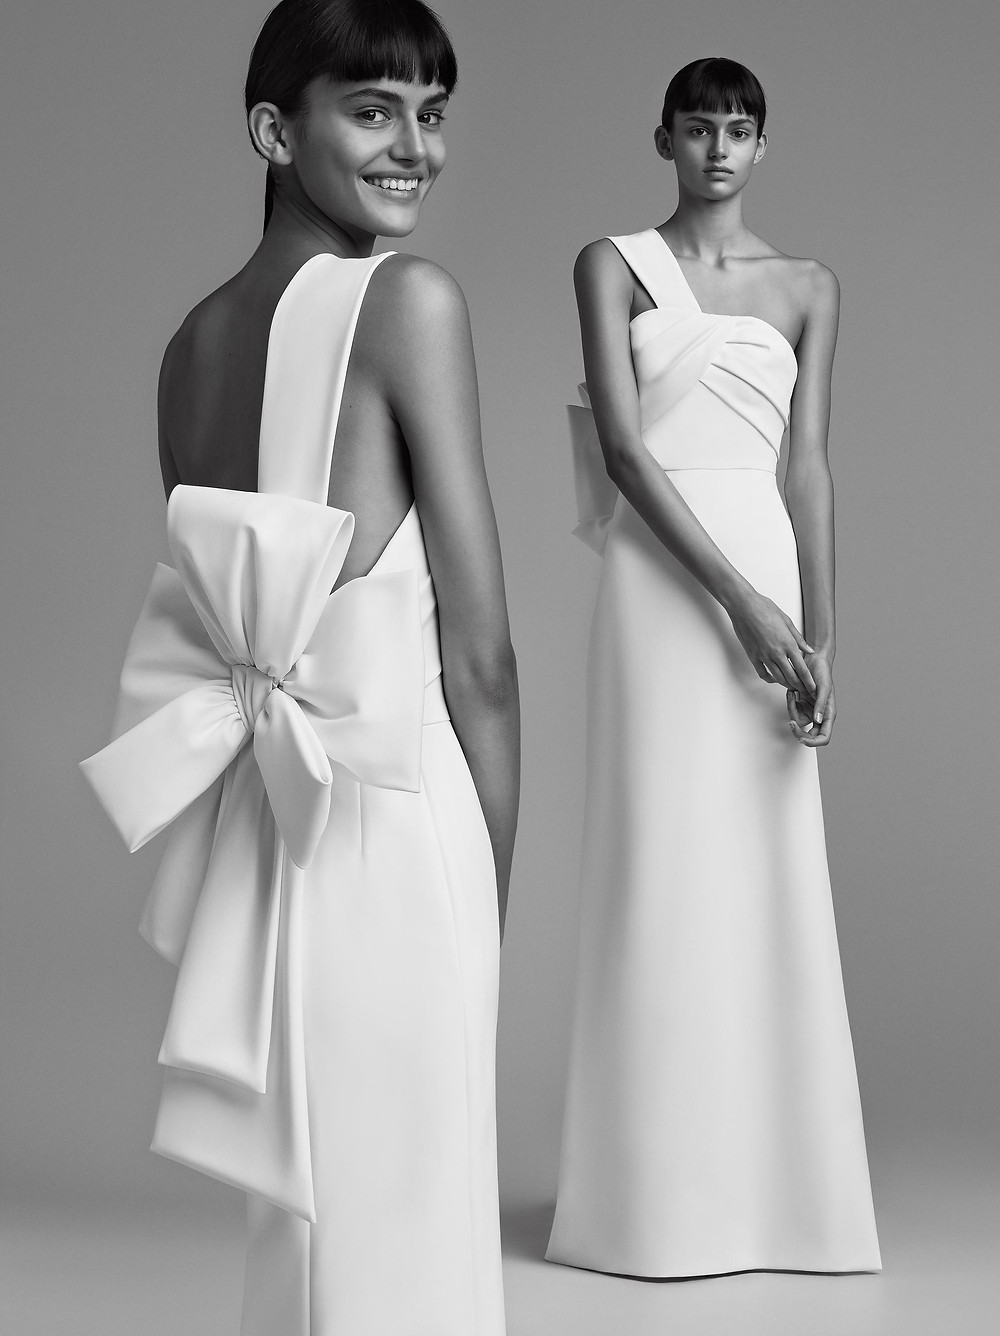 A clean, one-shoulder sheath wedding dress, with a large bow